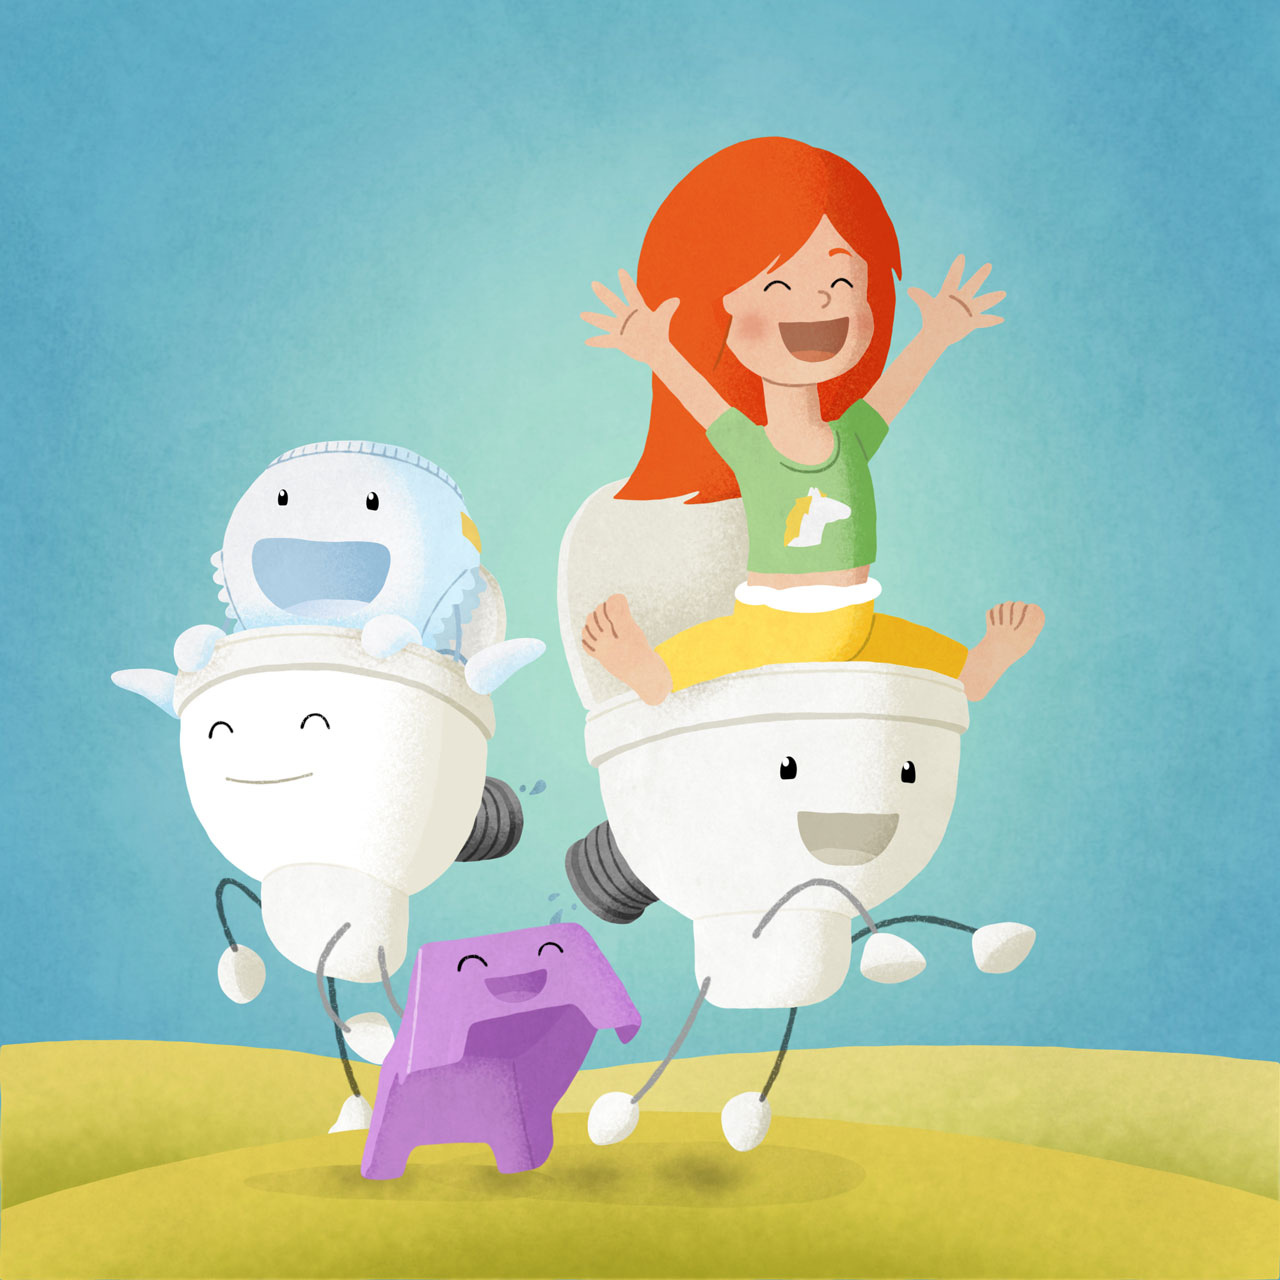 Red hair girl on a toilet characters cheering and being happy